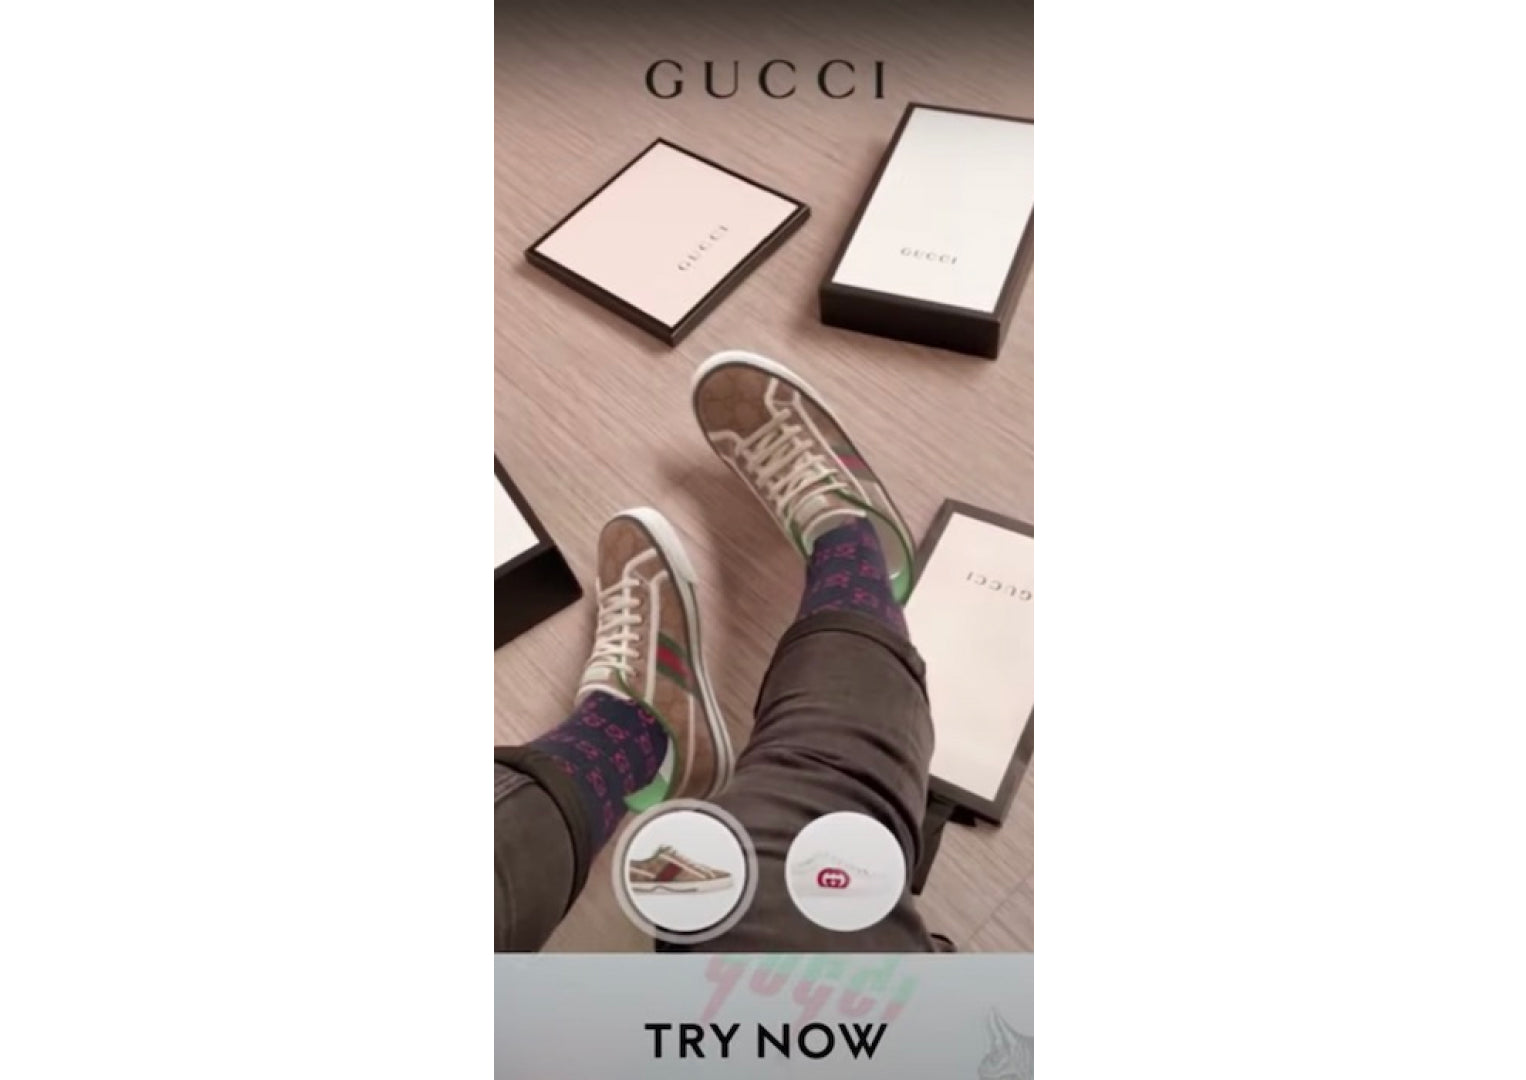 gucci snapchat filter for social commerce